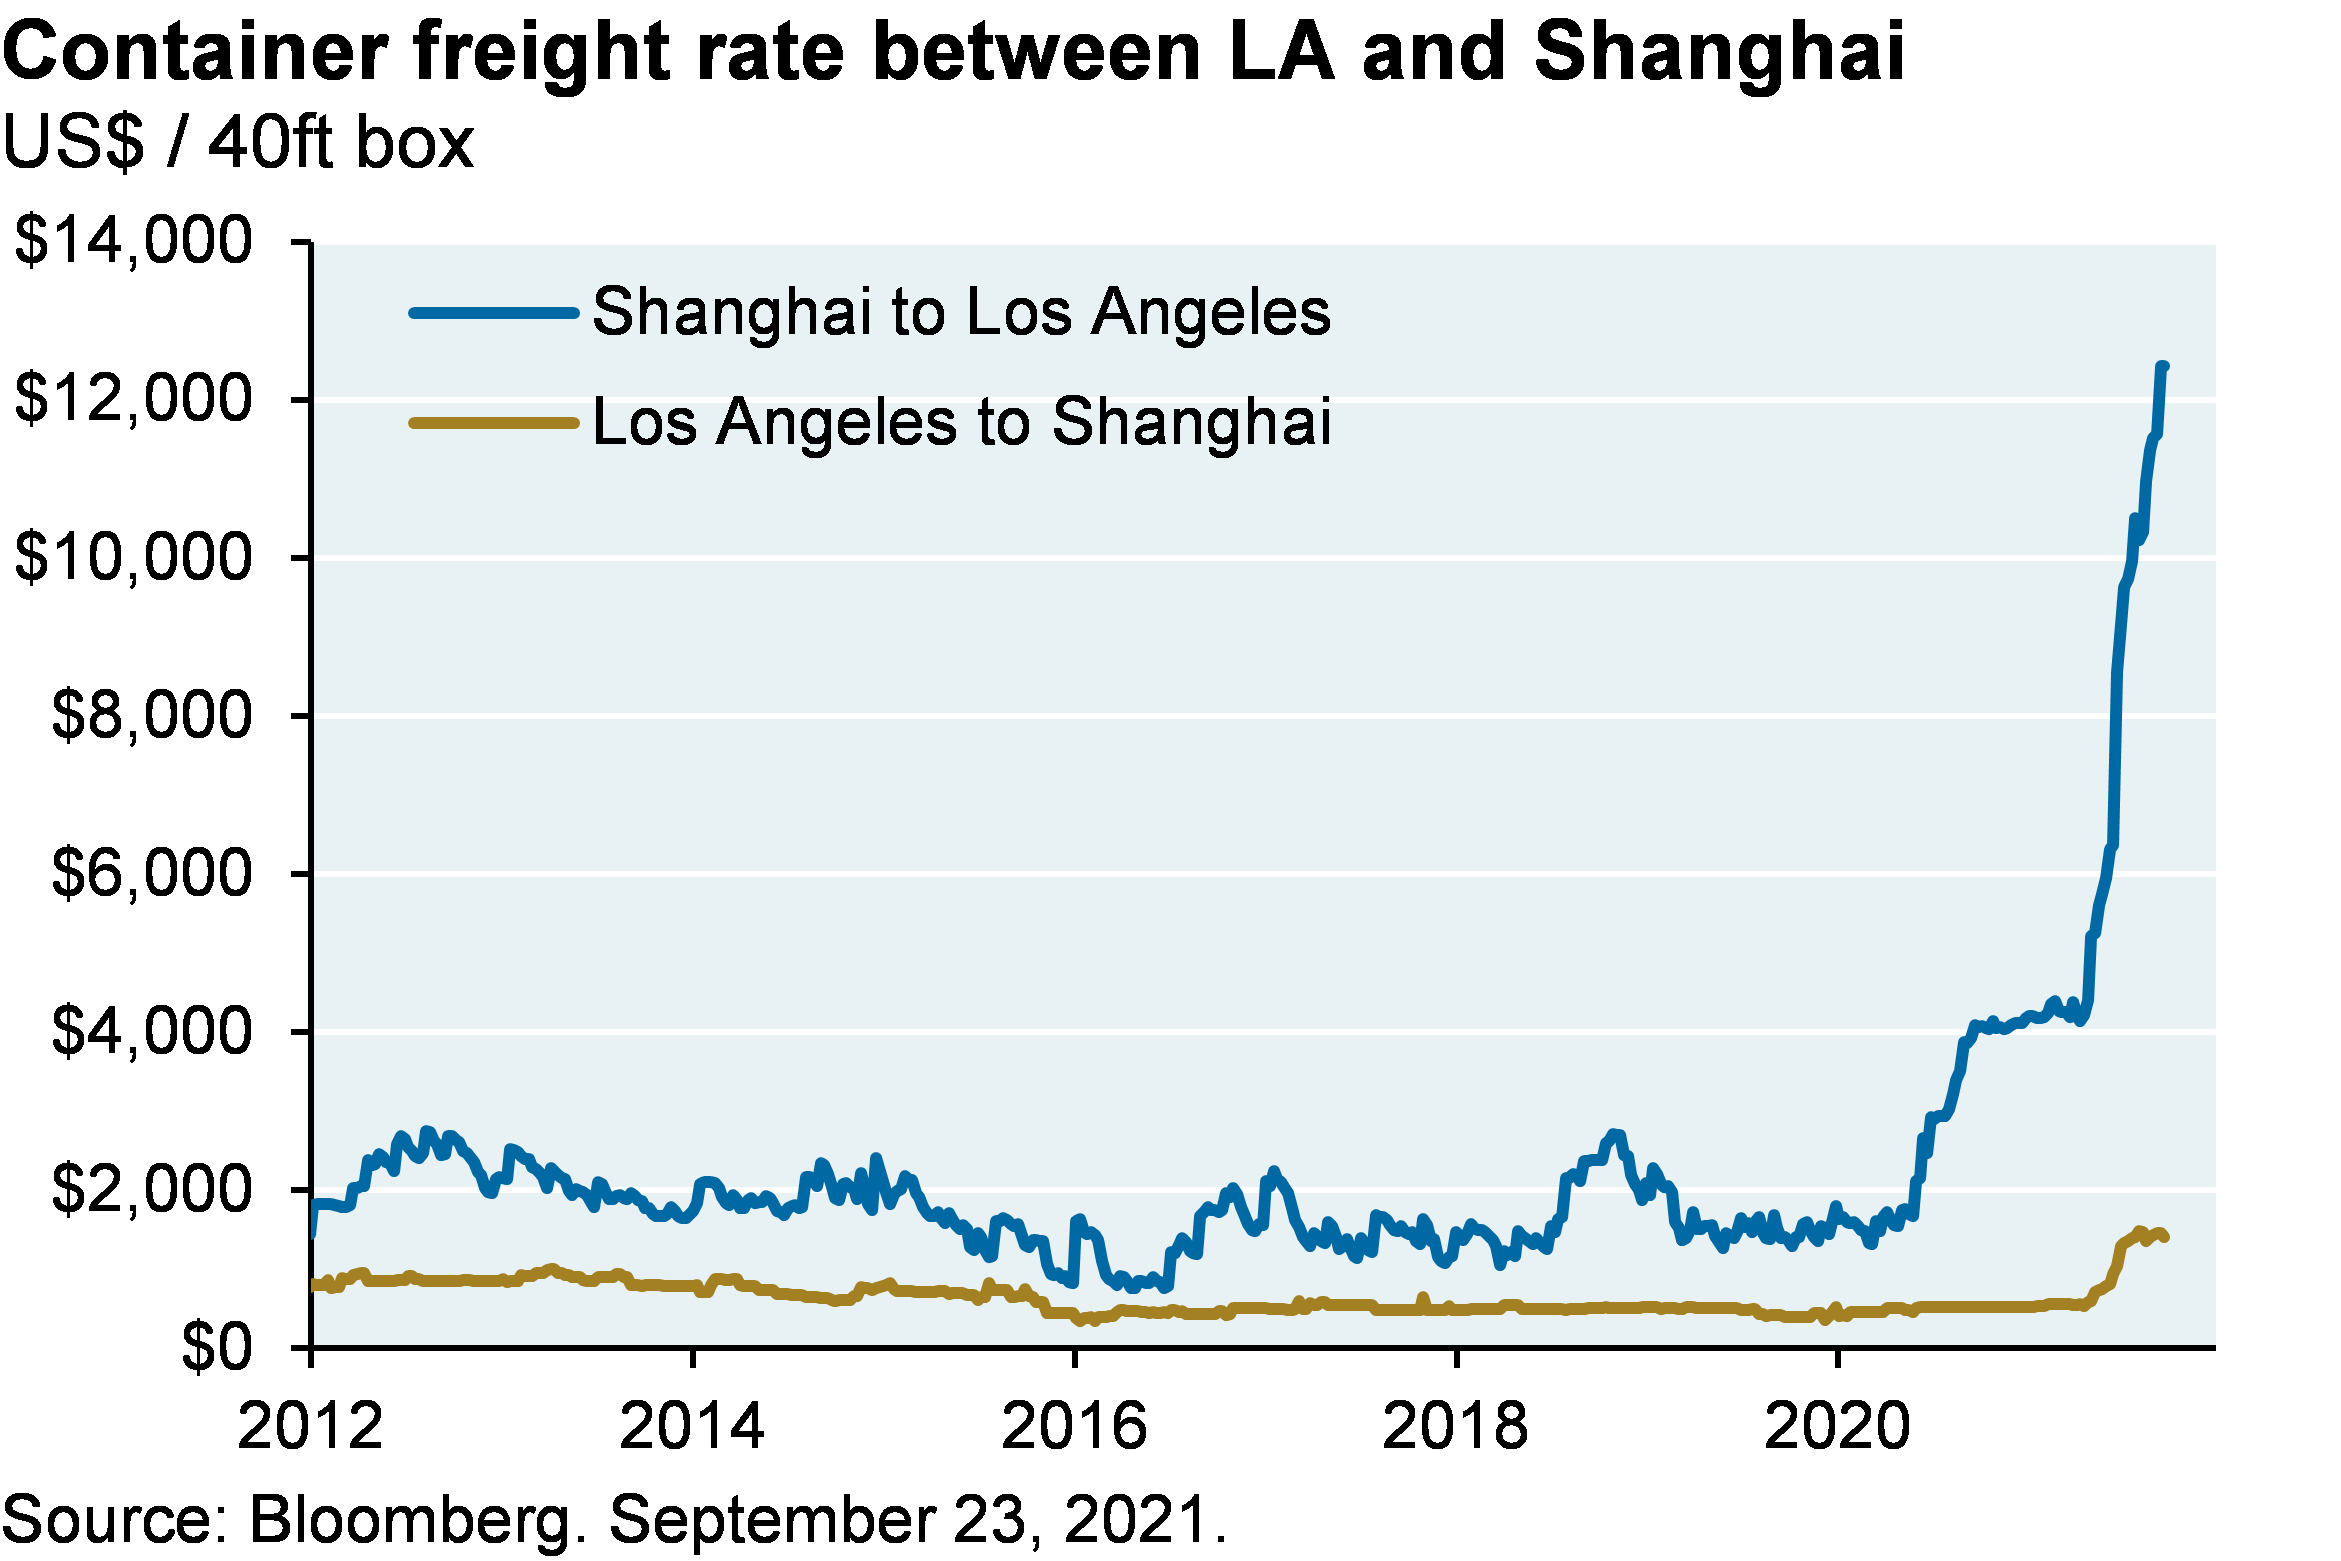 Line chart shows the container freight rate between LA and Shanghai, shown in US dollars per 40ft box. While the Los Angeles to Shanghai container freight rate has remained steady since 2012 (though with a small recent spike), the Shanghai to Los Angeles freight rate has spiked from a normal value of around $2,000 to a most recent peak of over $12,000 per 40ft box.